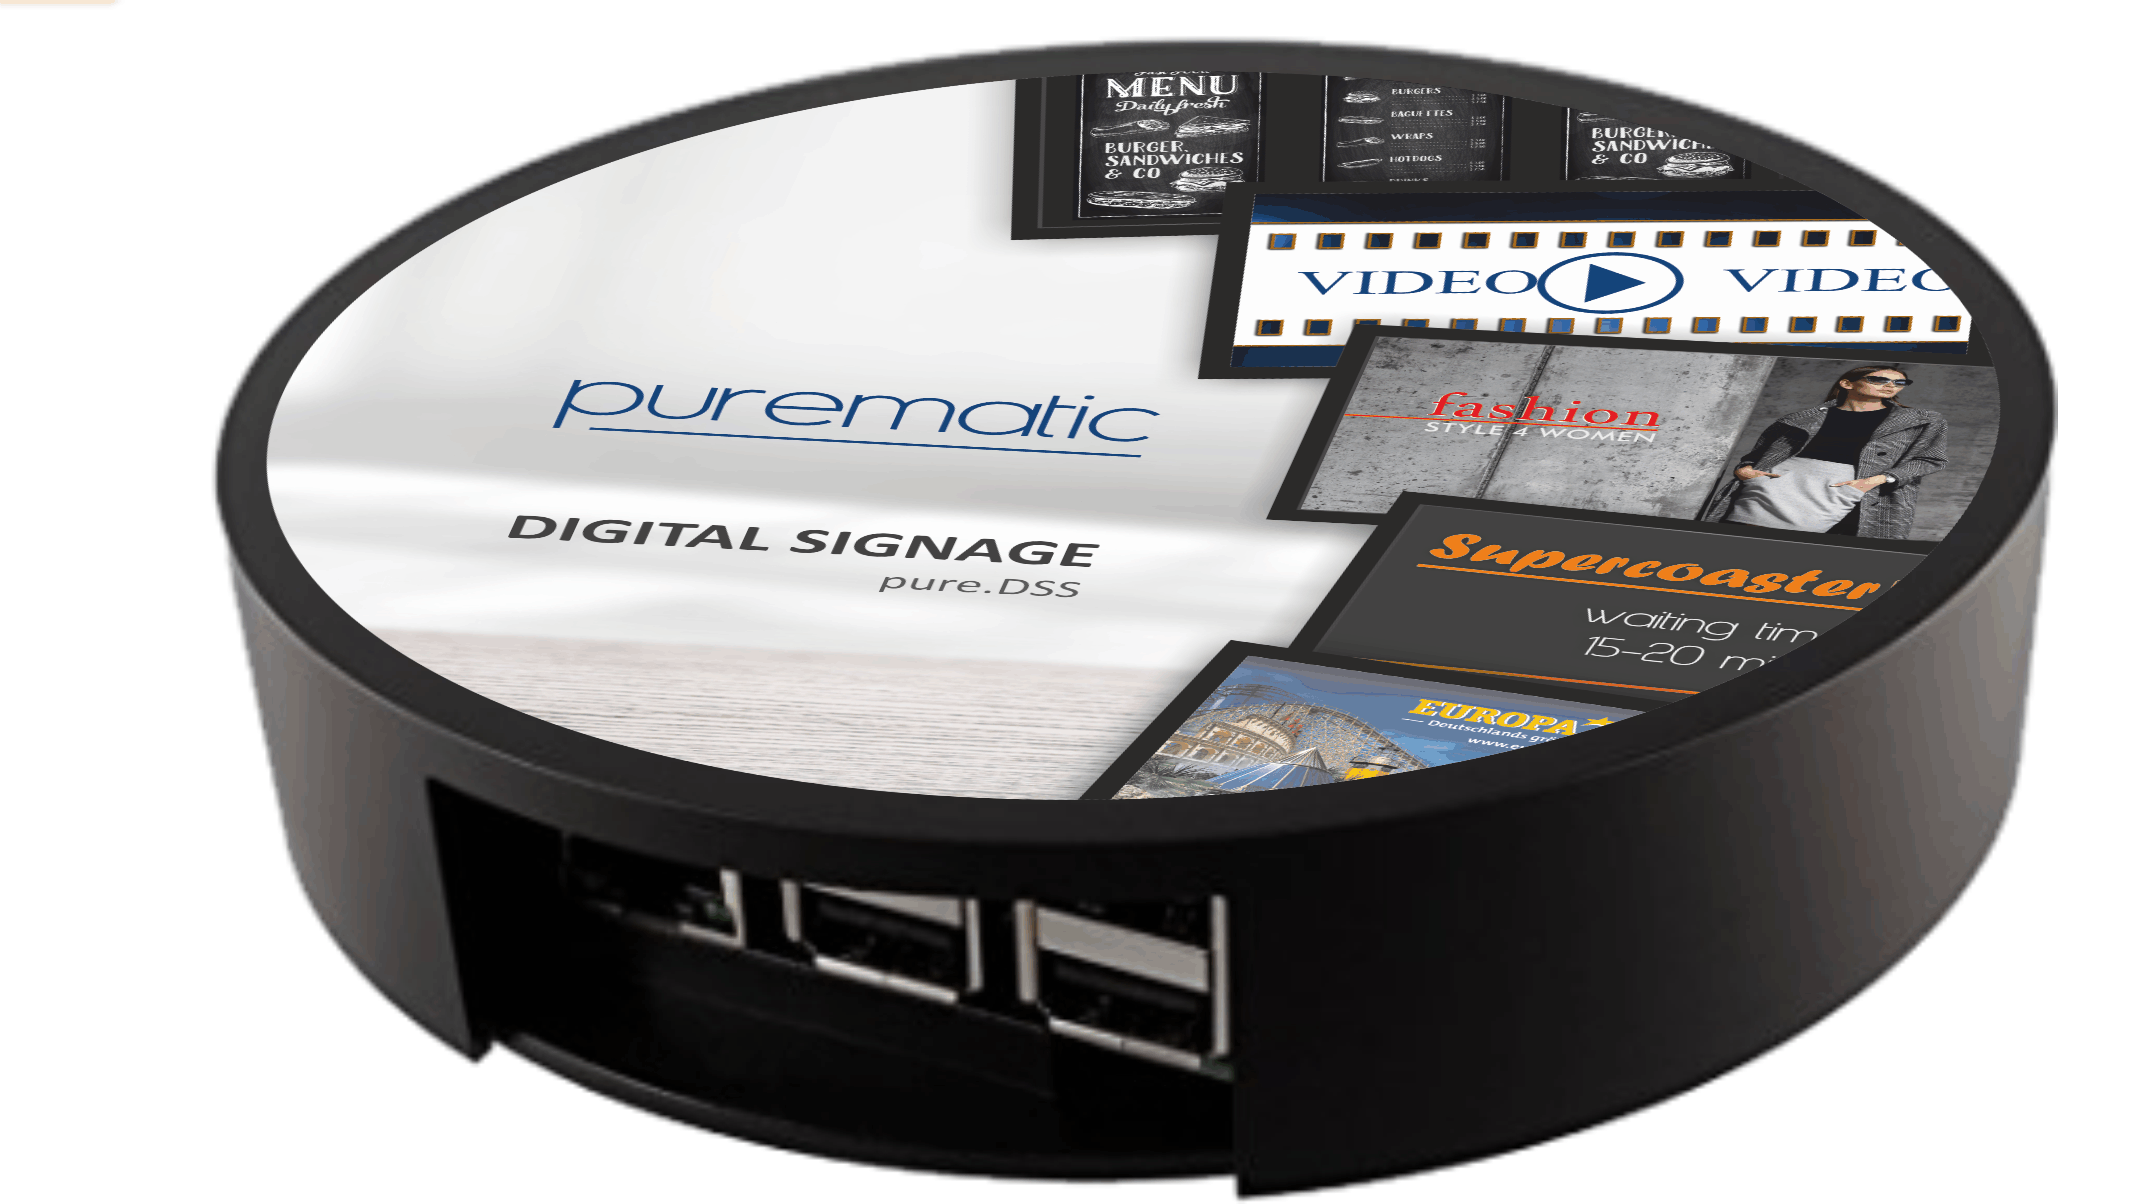 Prices pure.DSS Digital Signage